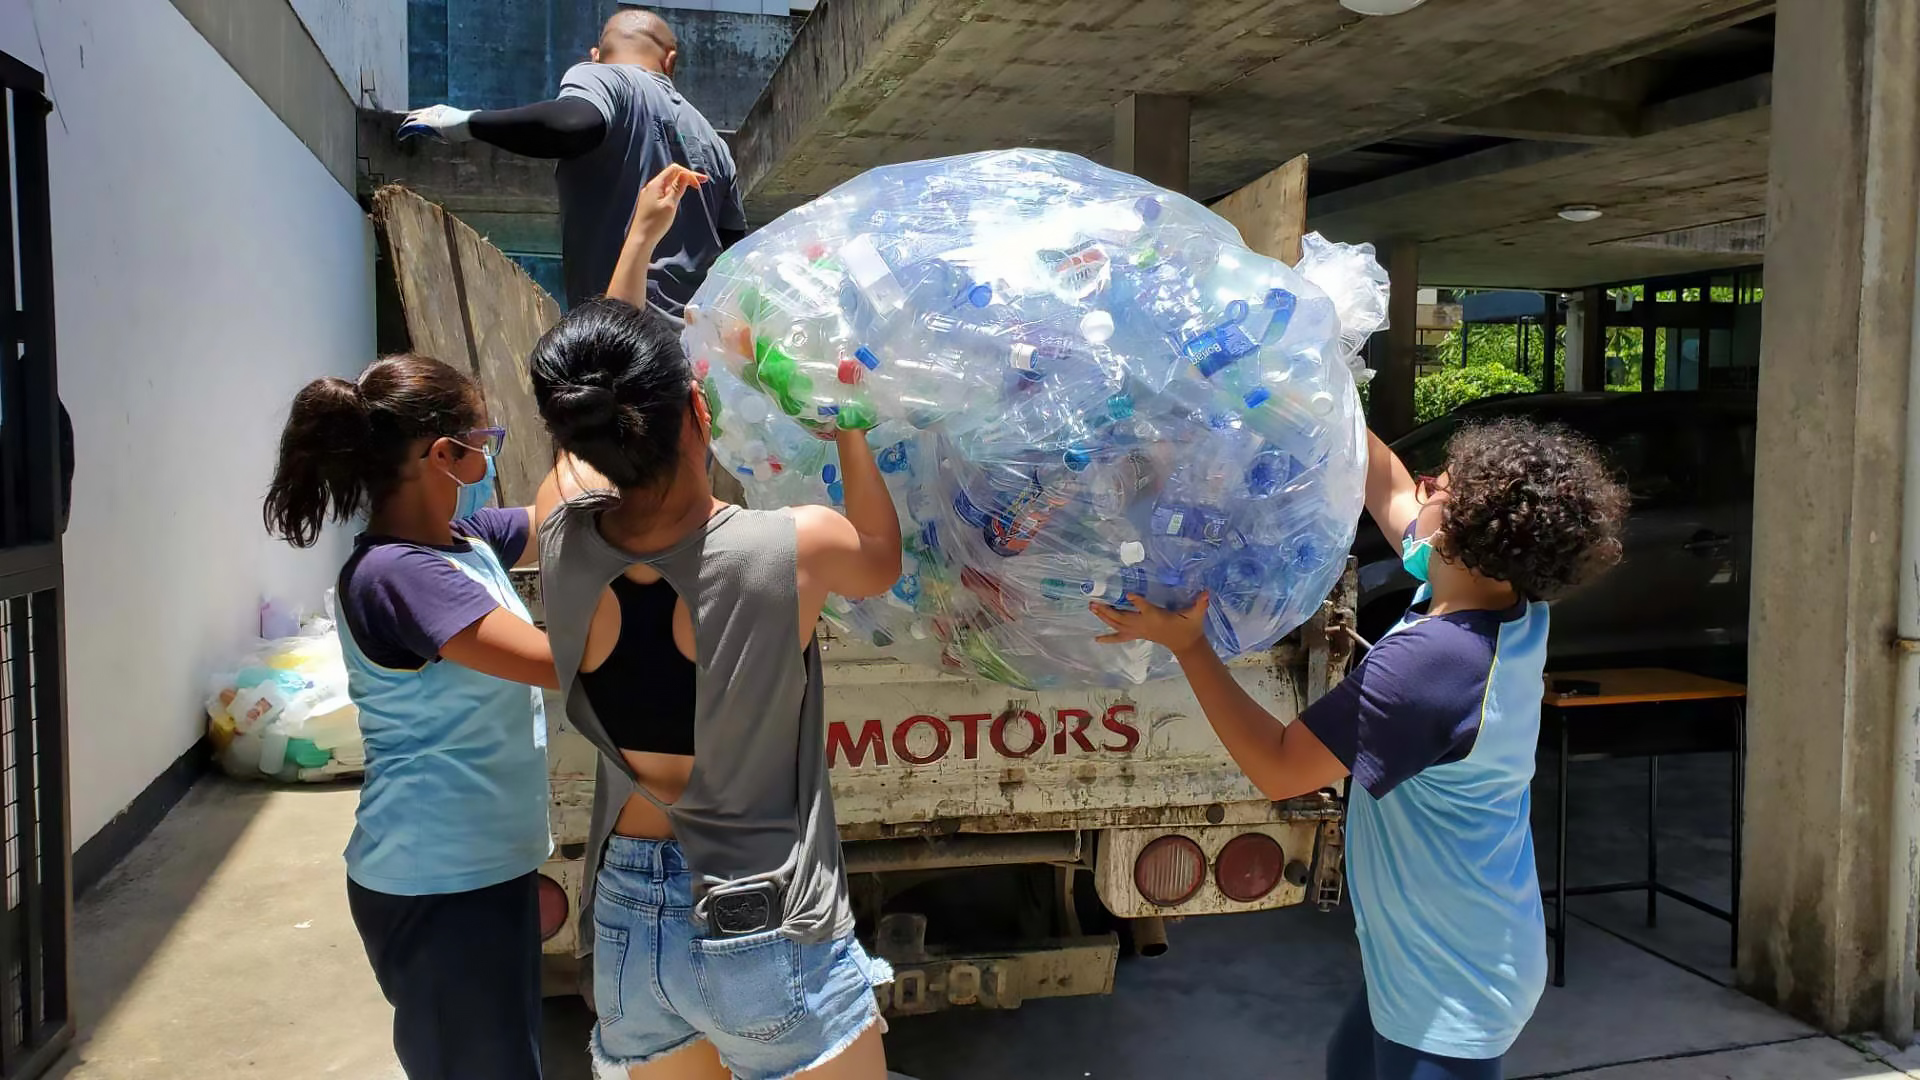 Macau for Waste Reduction - PET bottles are among the most common plastic materials that Macau for Waste Reduction collects at its events